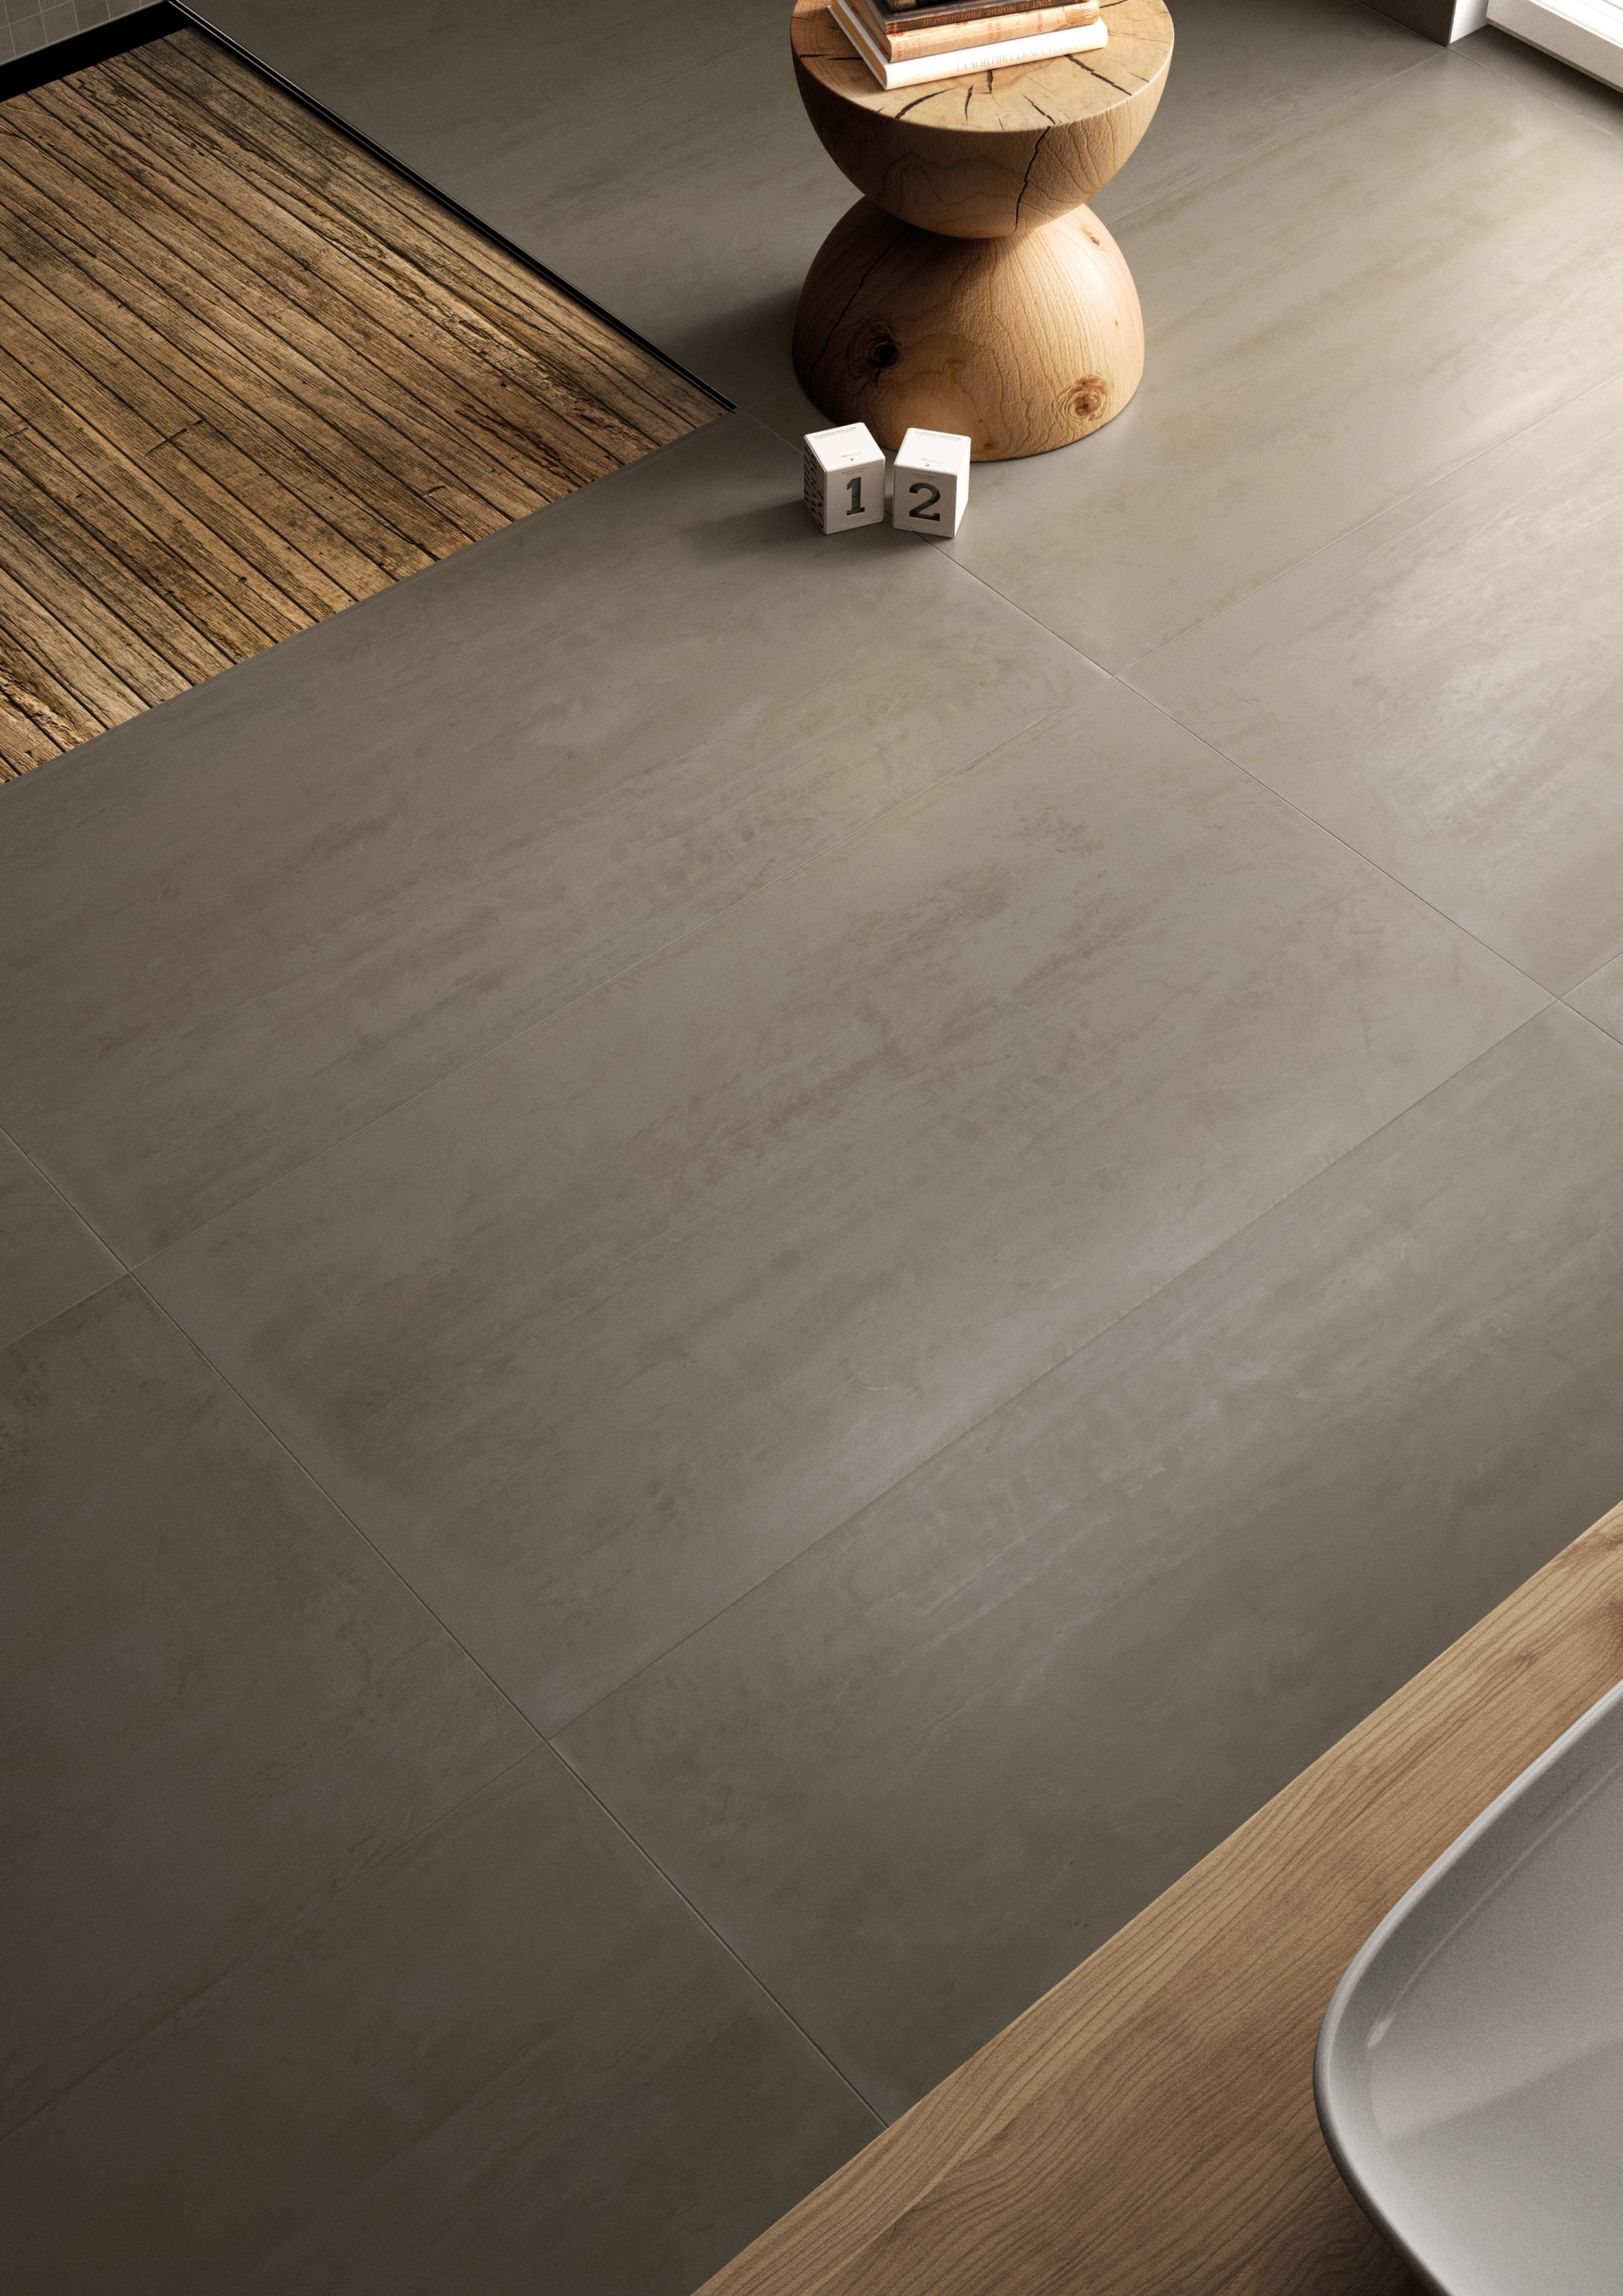 Carrelage Interieur Effet Resine 60x60 Olive Lappato Rectifie Collection Syncro Century Carrelage Interieur Tuile Carrelage